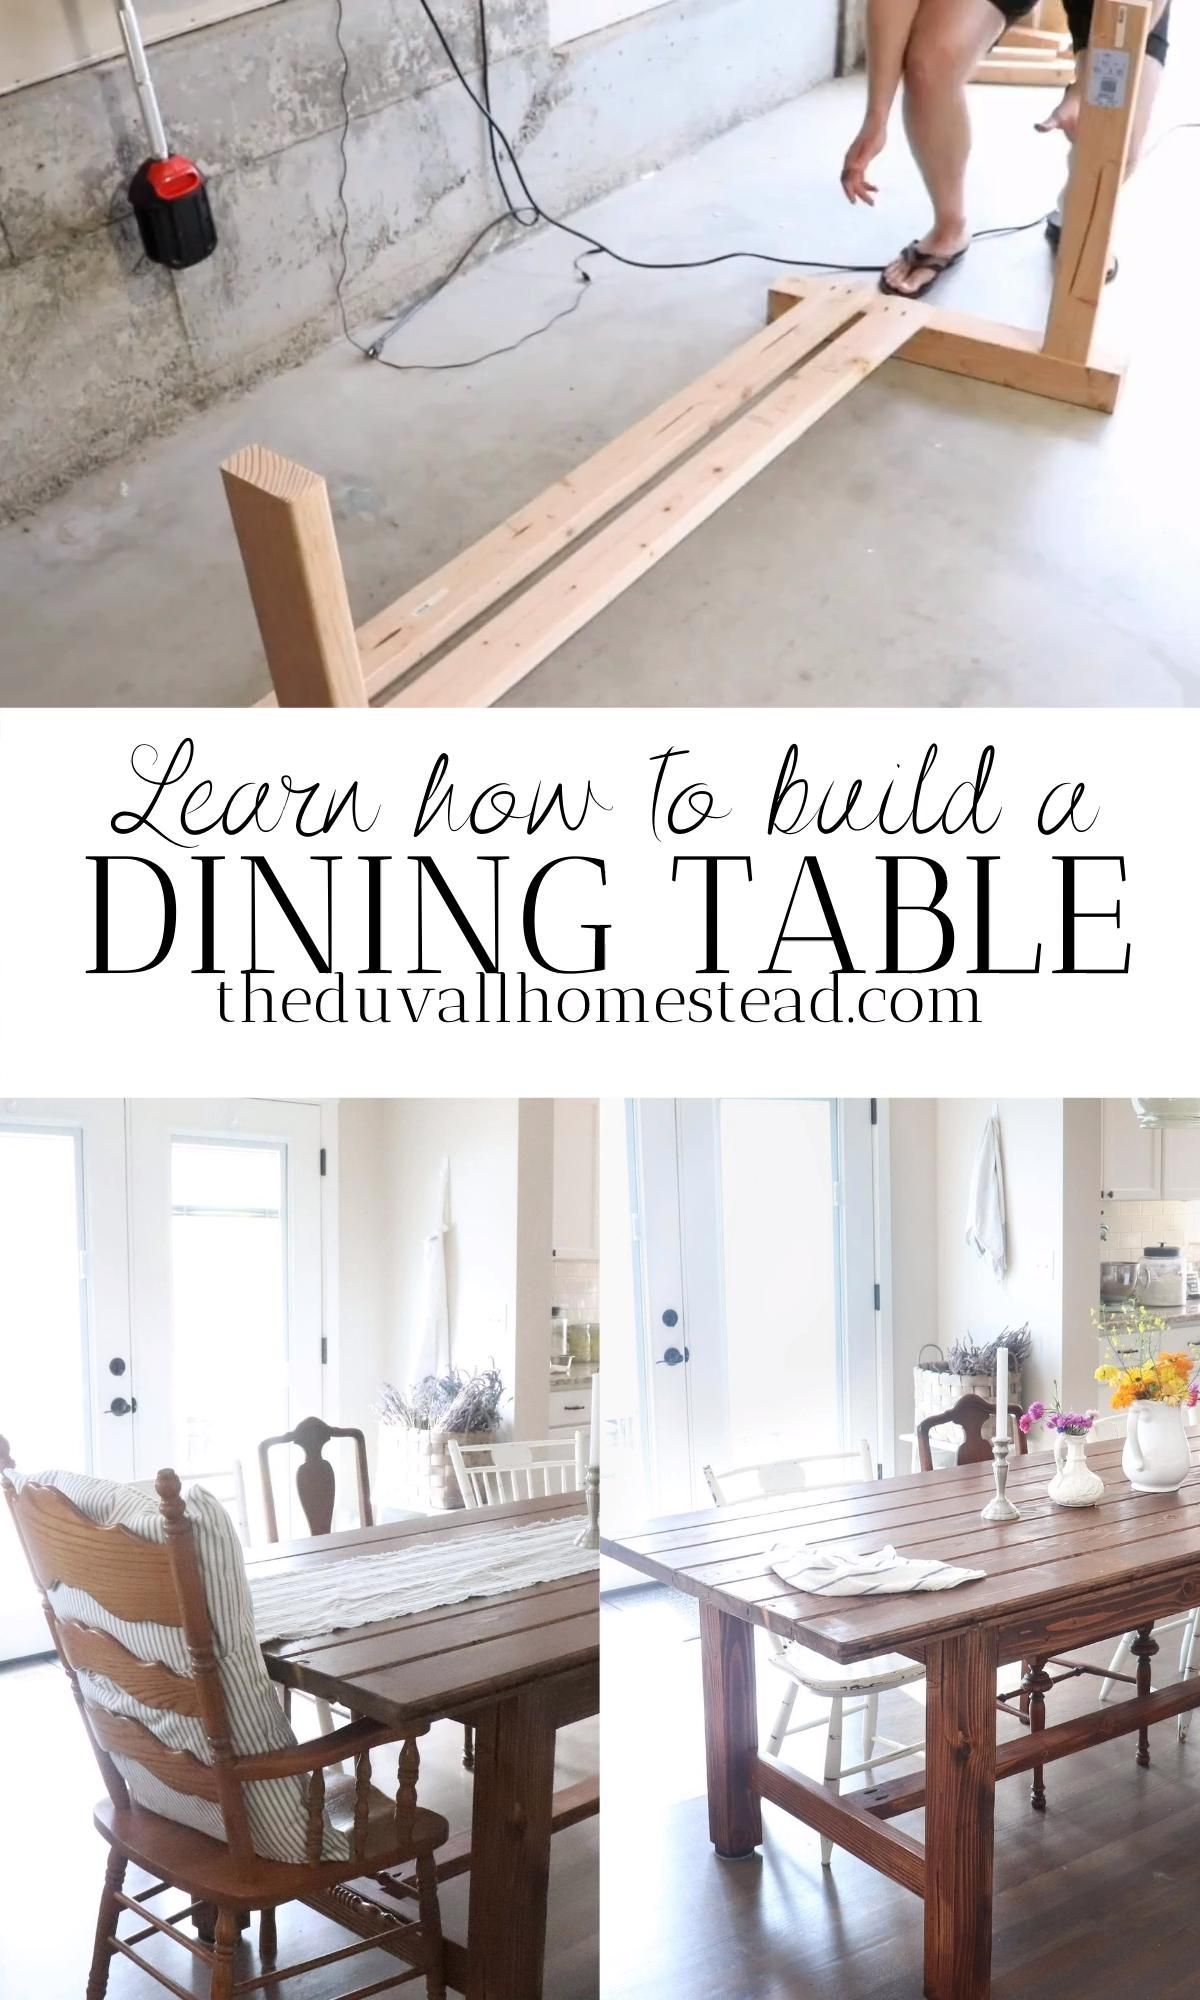 HOW TO BUILD A DINING TABLE for beginners | farmhouse style DIY full tutorial & plans -   19 farmhouse decorations for kitchen table ideas